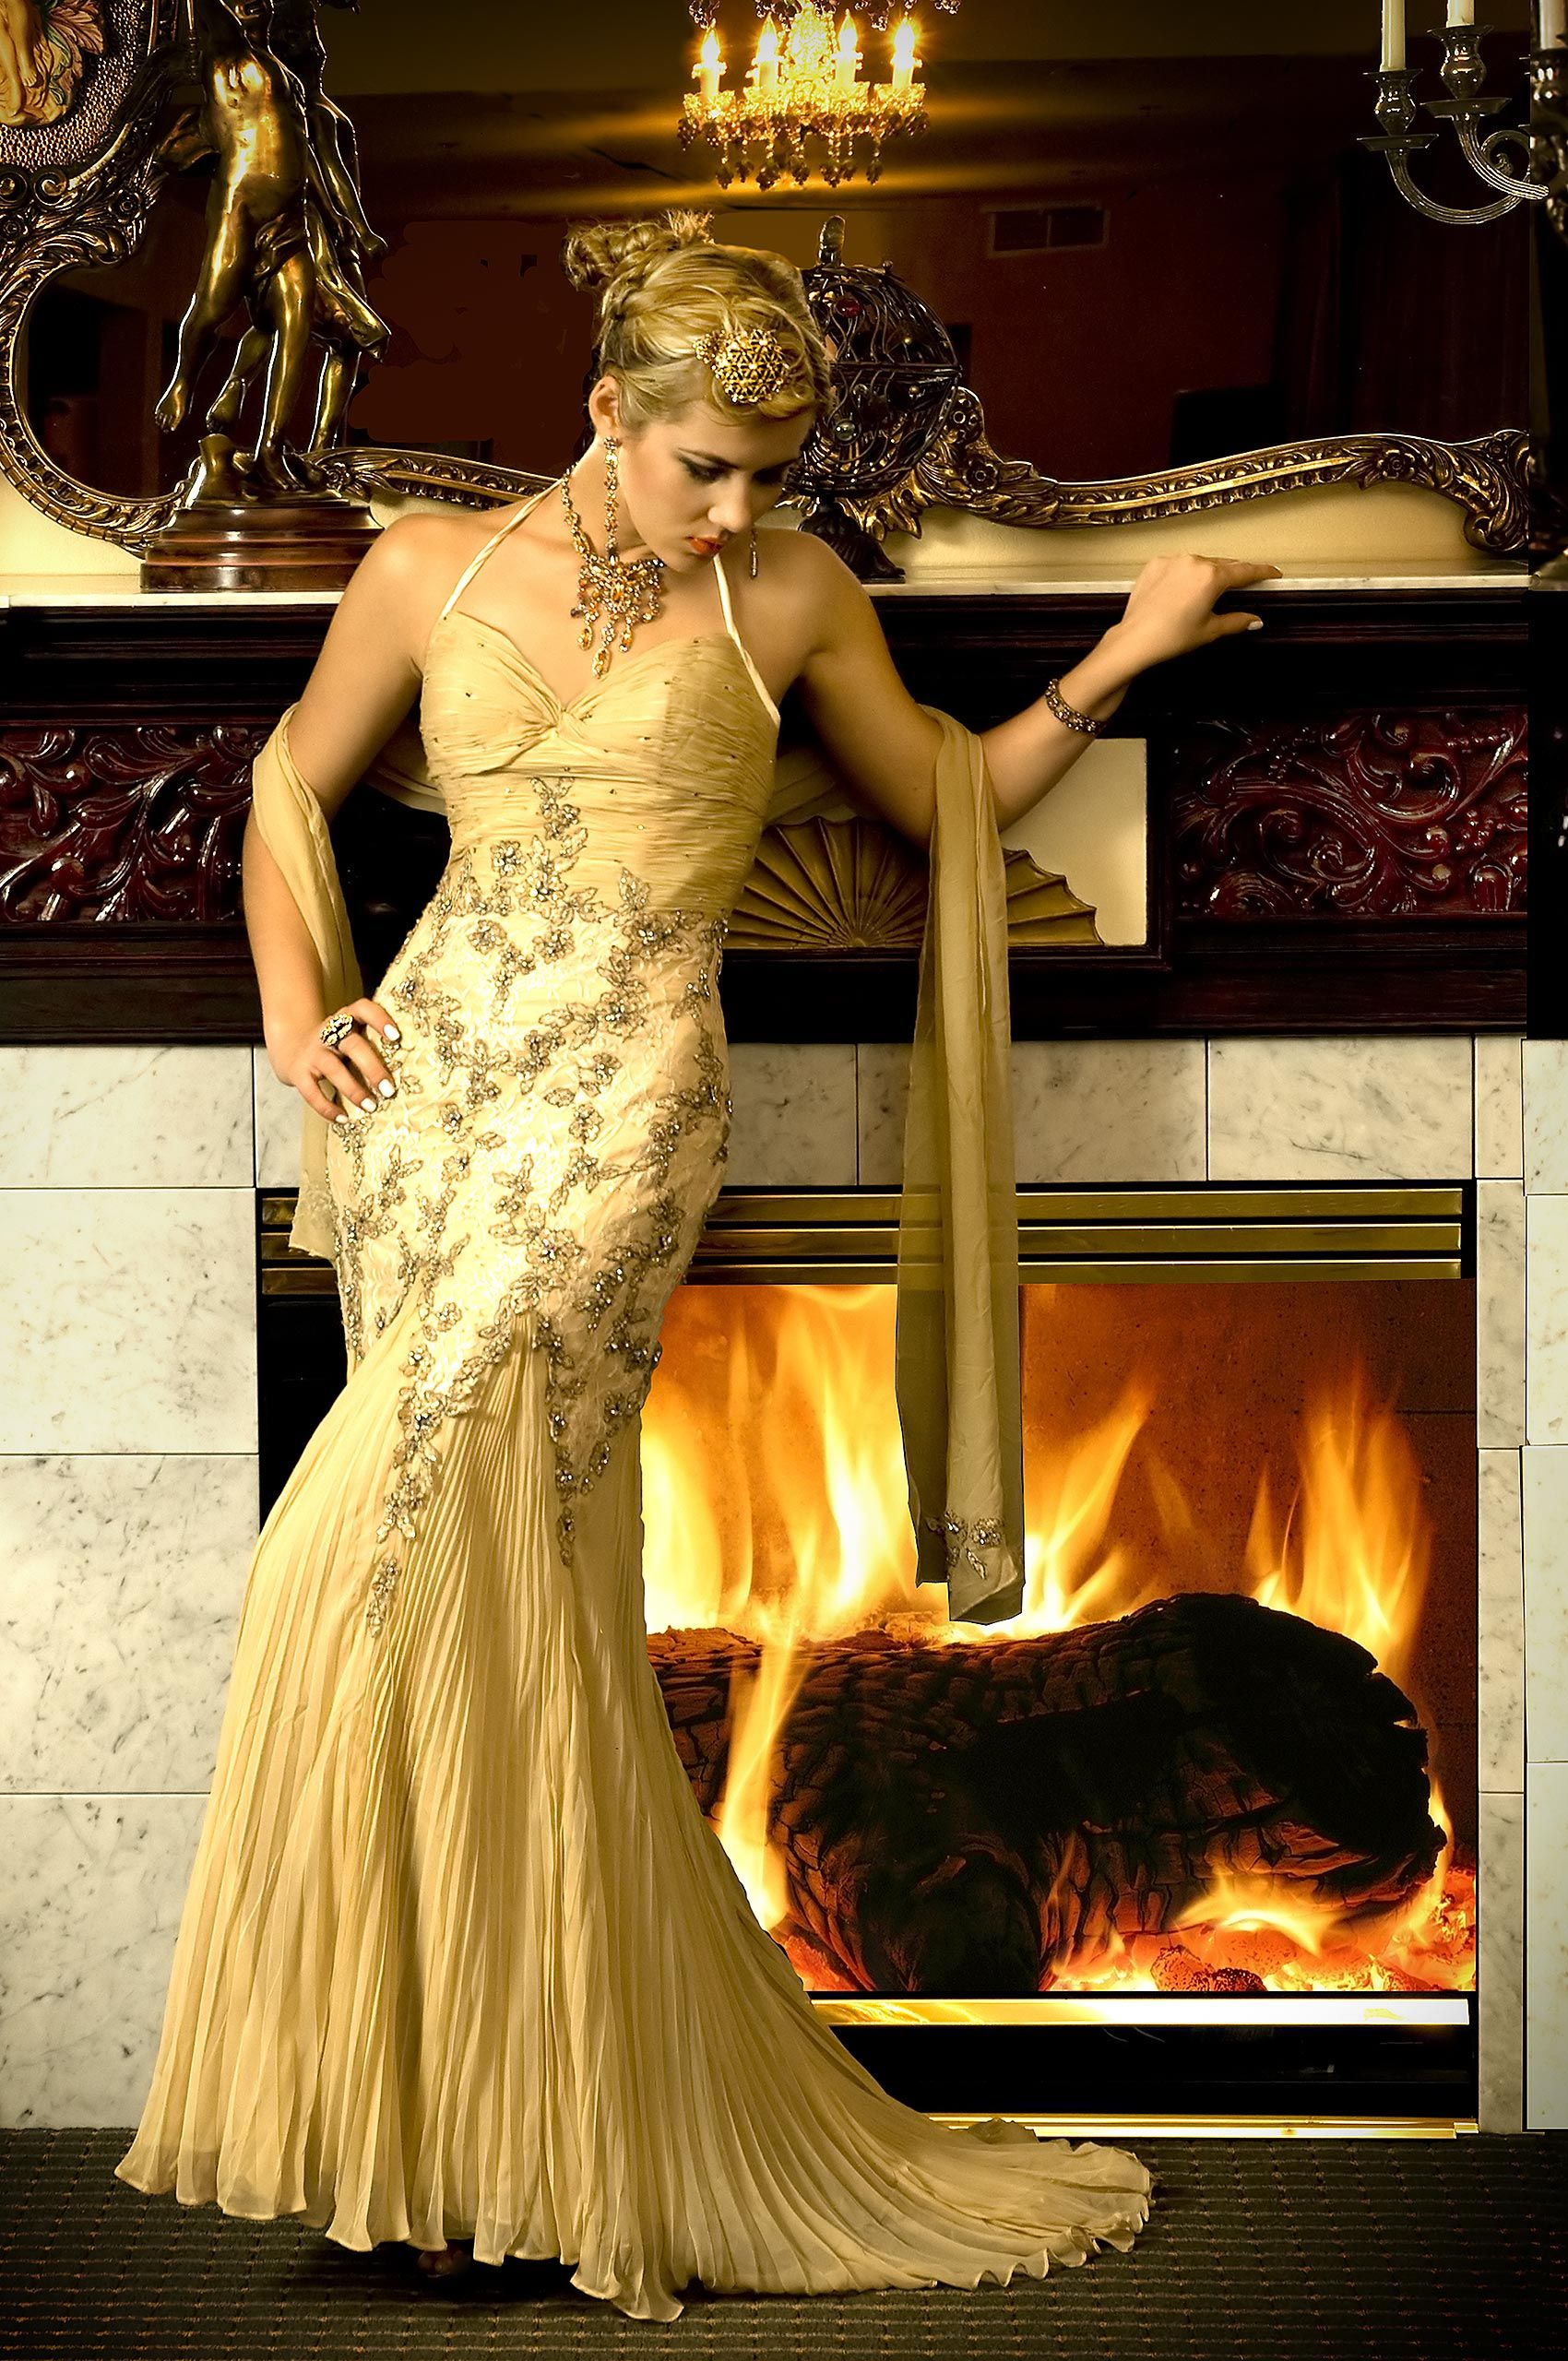 dasha_fireplace.jpg